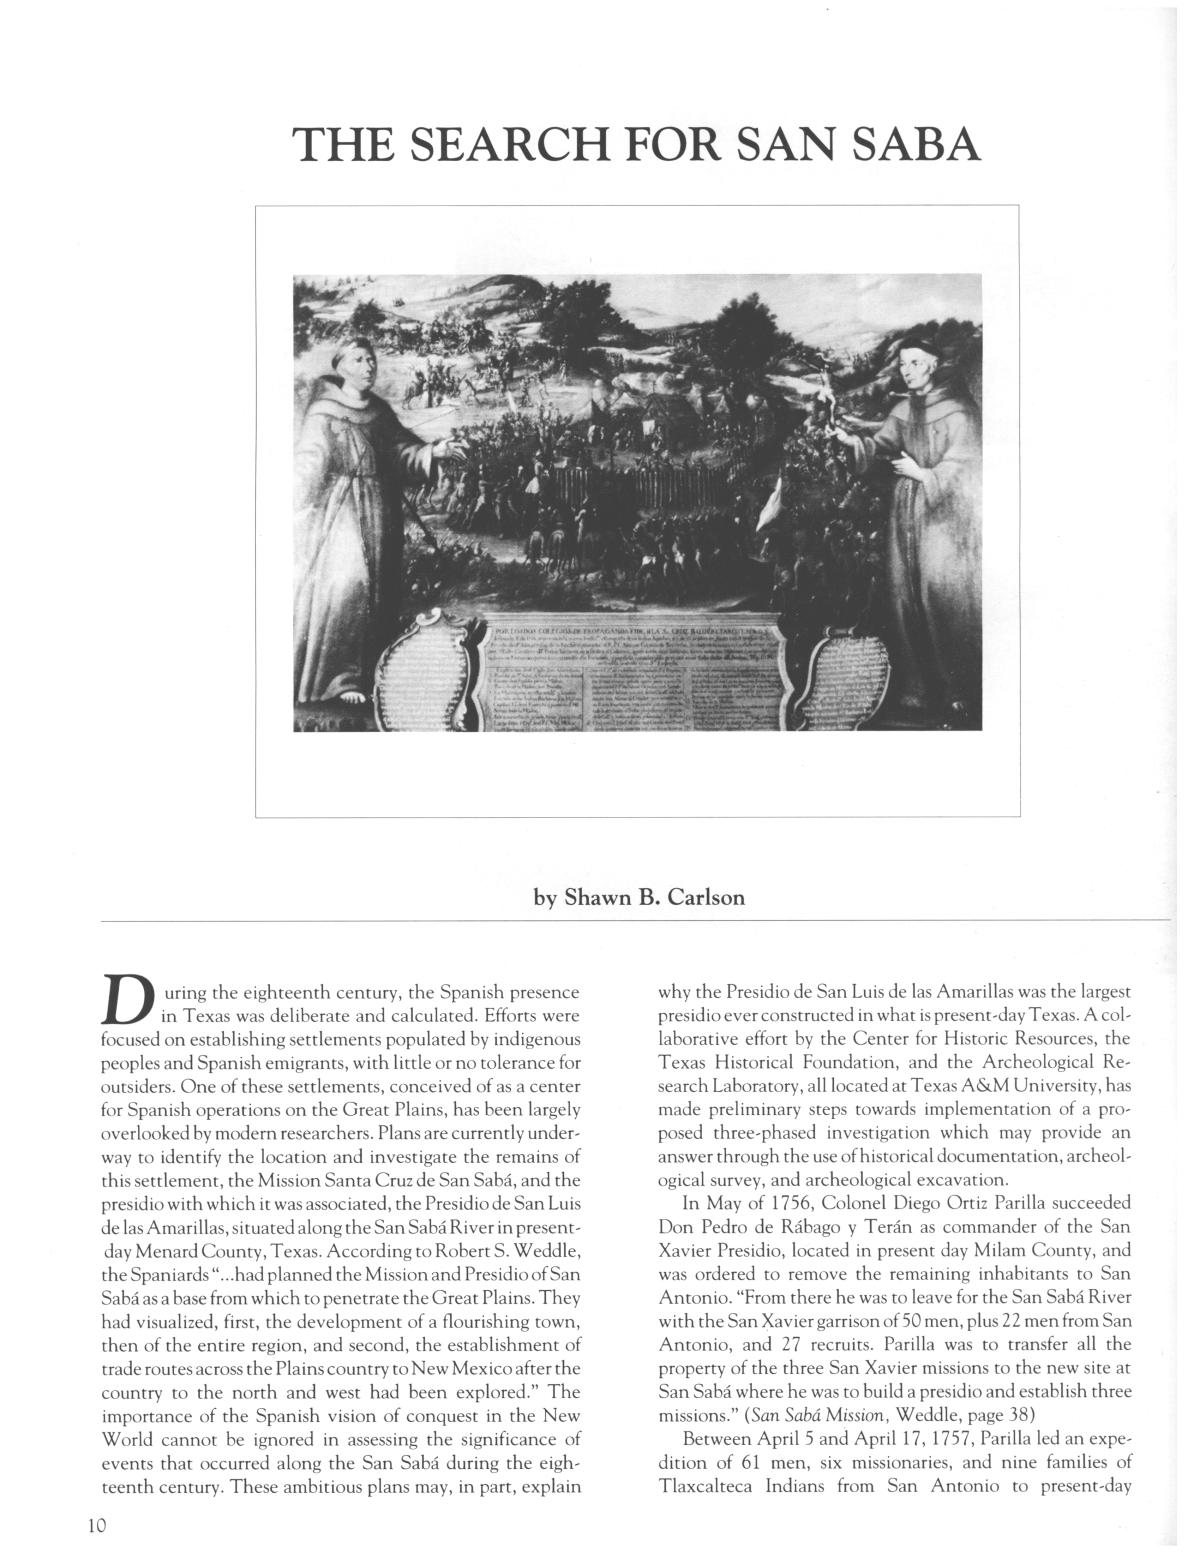 Heritage, Volume 6, Number 3, Fall 1988                                                                                                      10